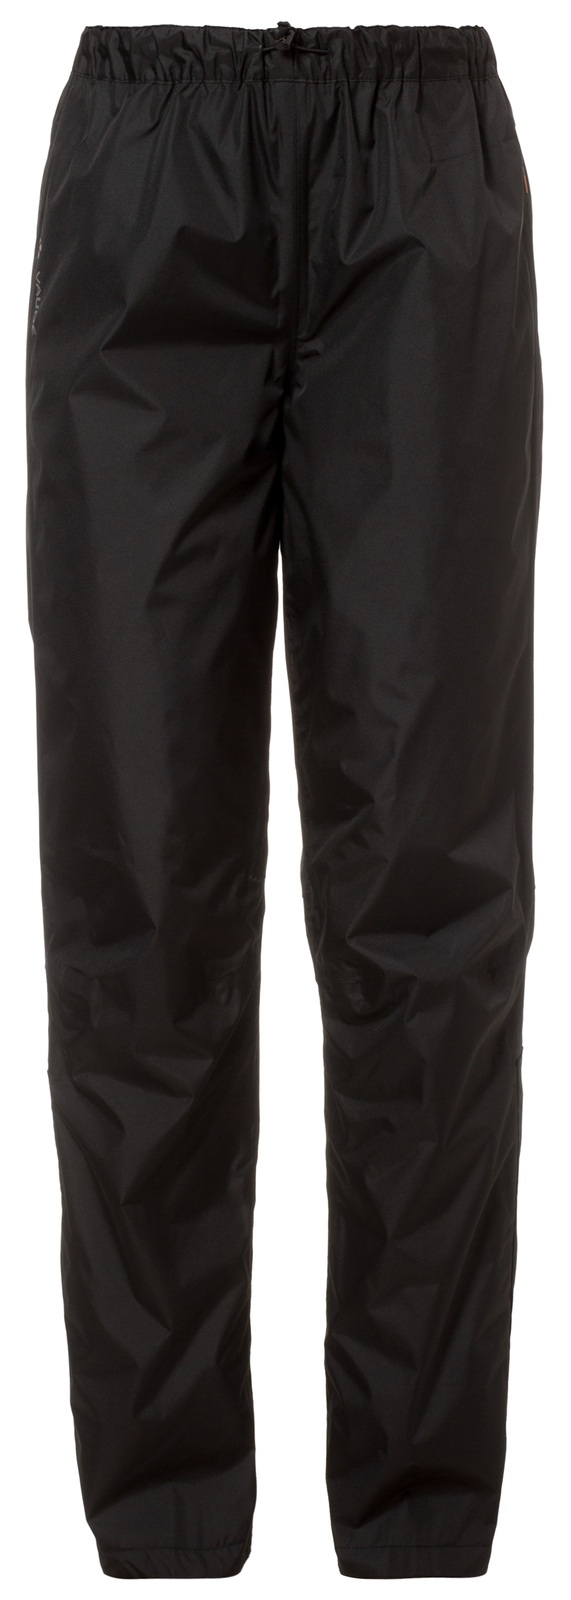 VAUDE Women´s Fluid Pants black Größe 46 - schneider-sports